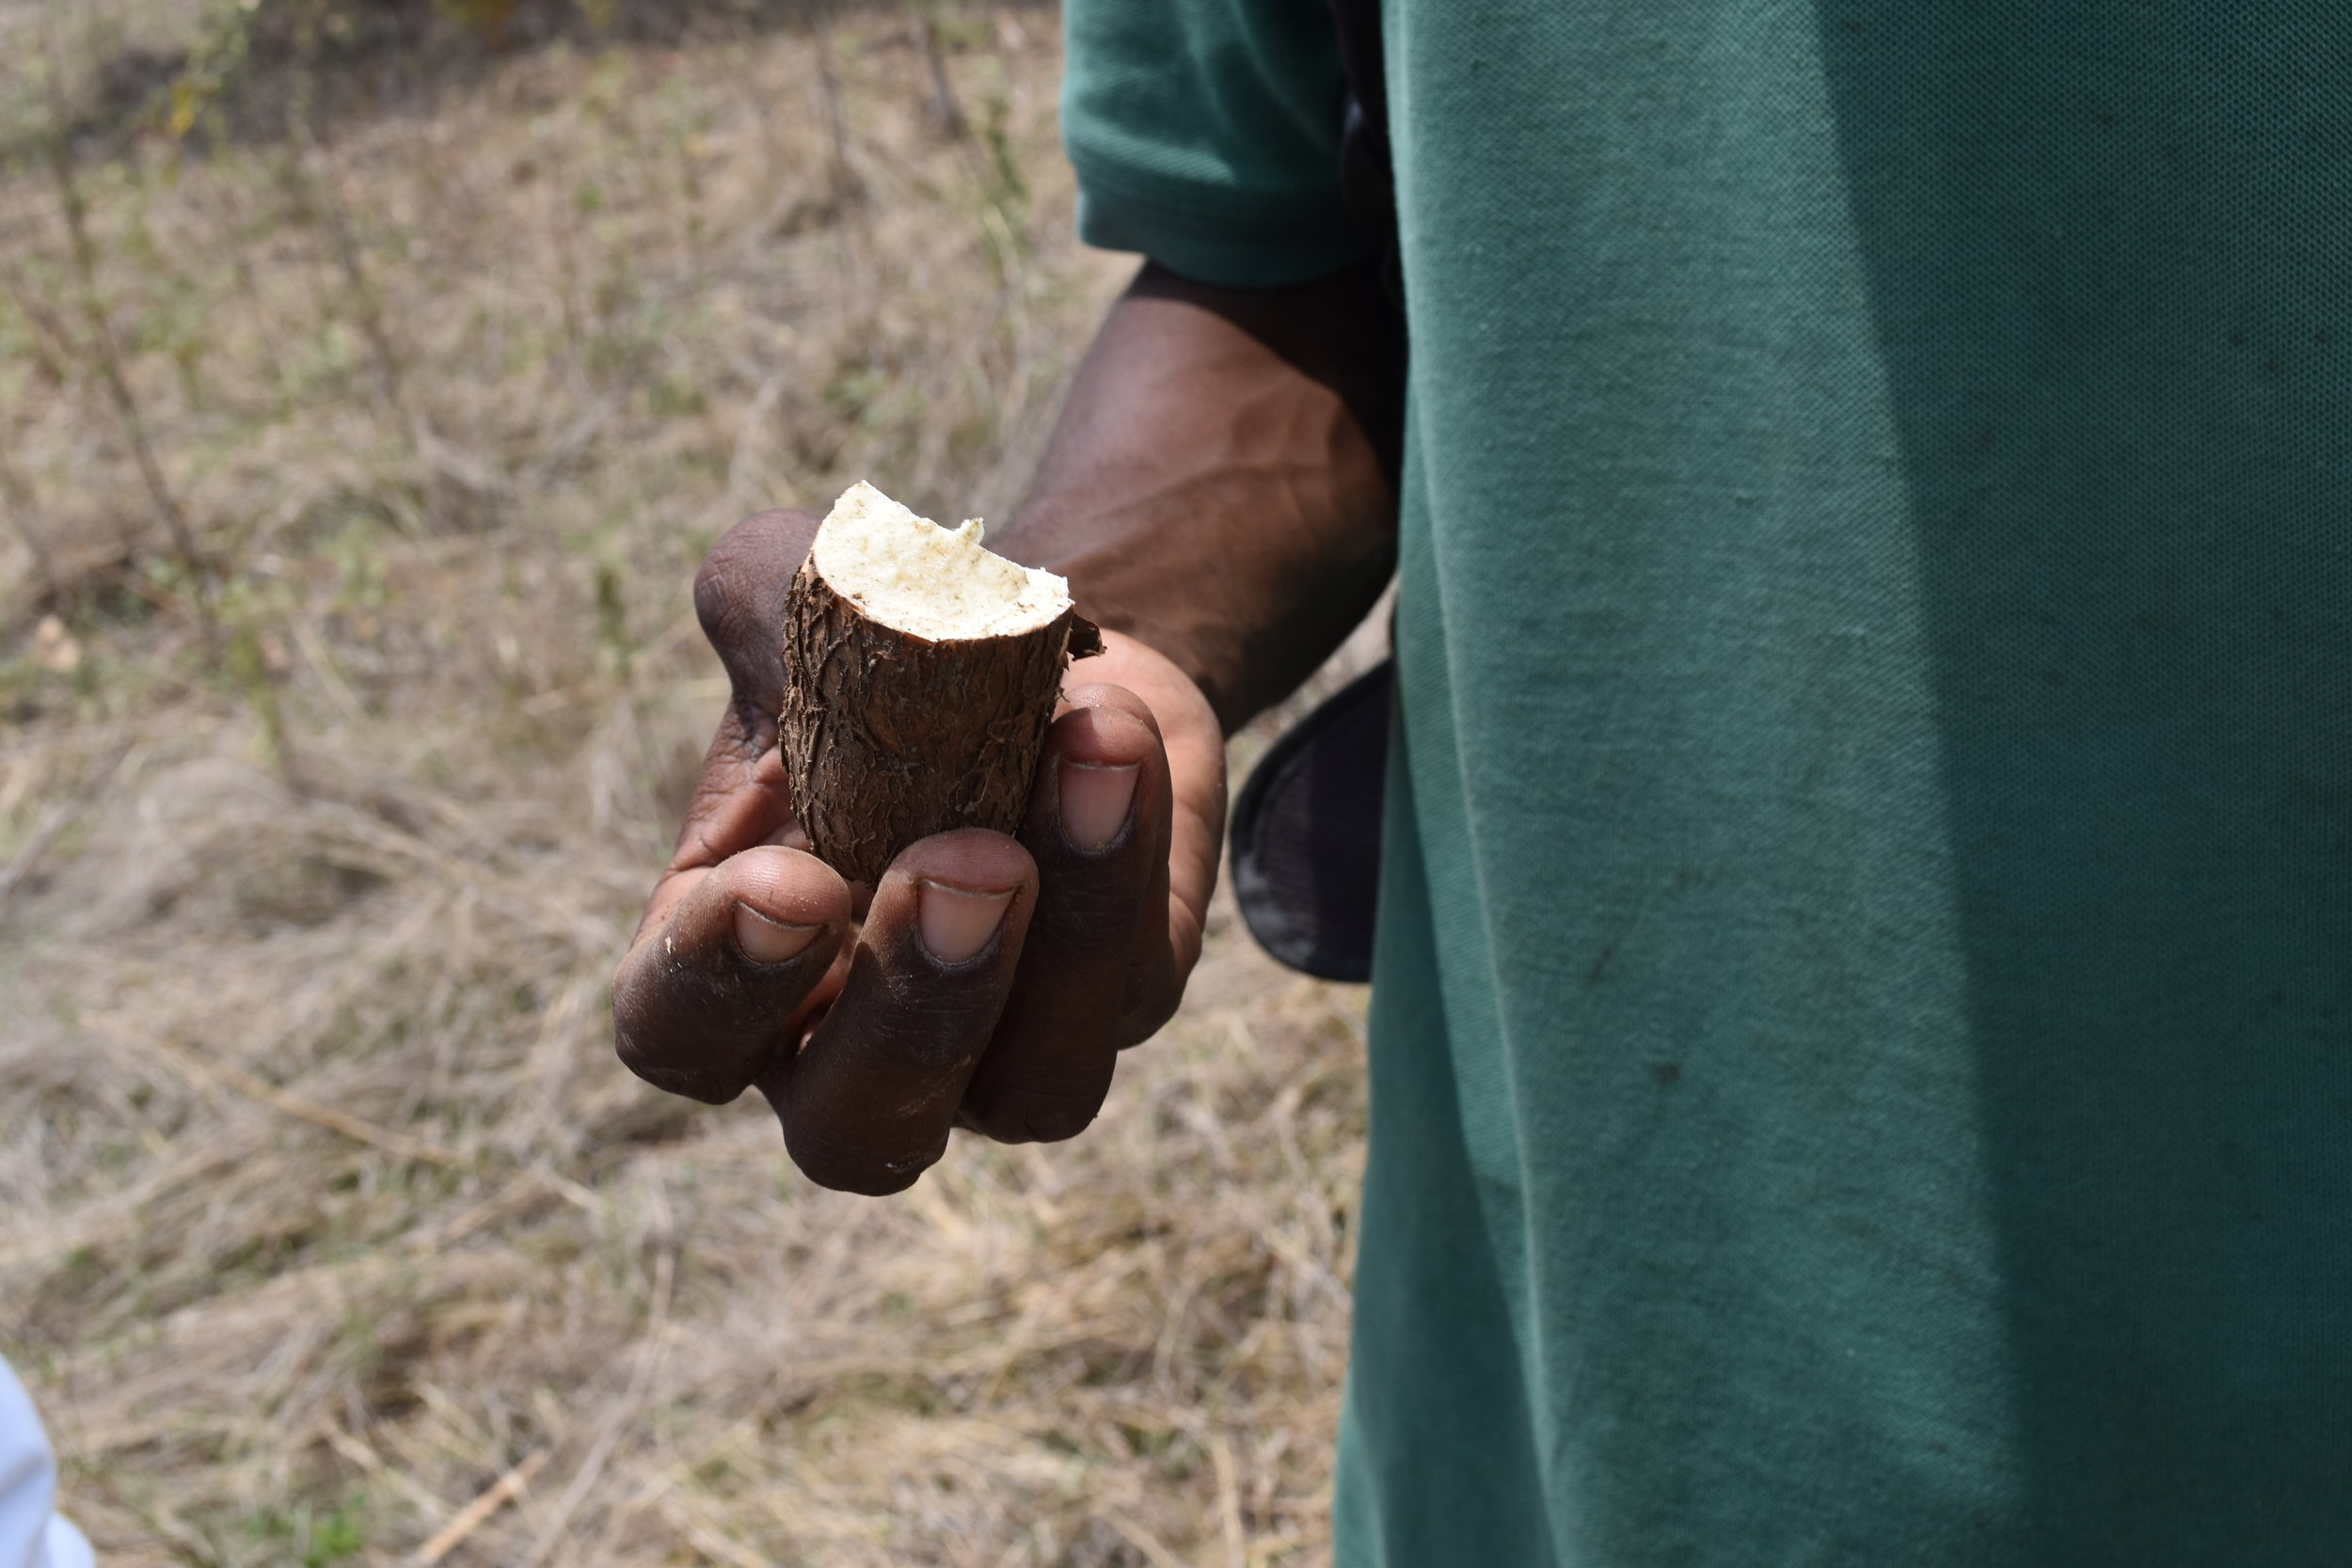 Andral tore open the outer skin of the manioc and ate the raw root crop.